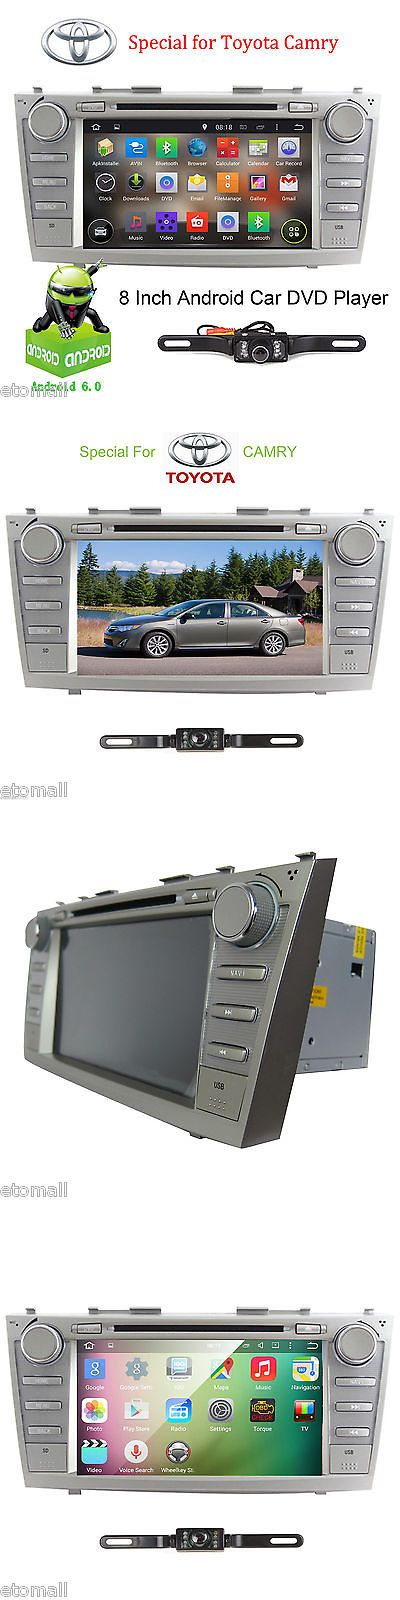 Video In-Dash Units w GPS: Gps Navigation 8 Car Dvd Player Wifi Radio For Toyota Camry 2007,2008,2009,2011 -> BUY IT NOW ONLY: $228.98 on eBay!